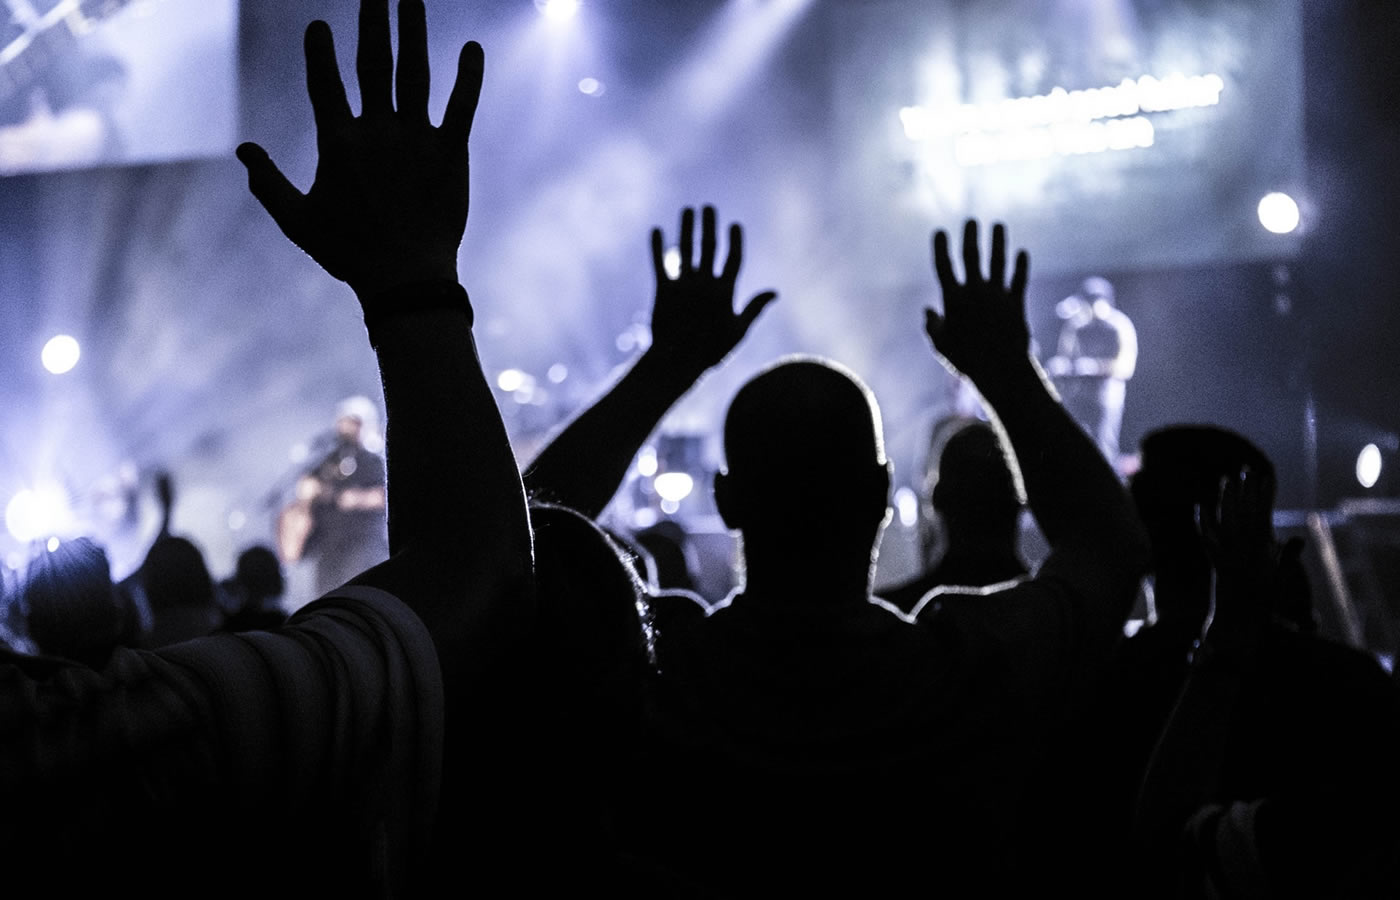 10 Reflections on Worship Leaders